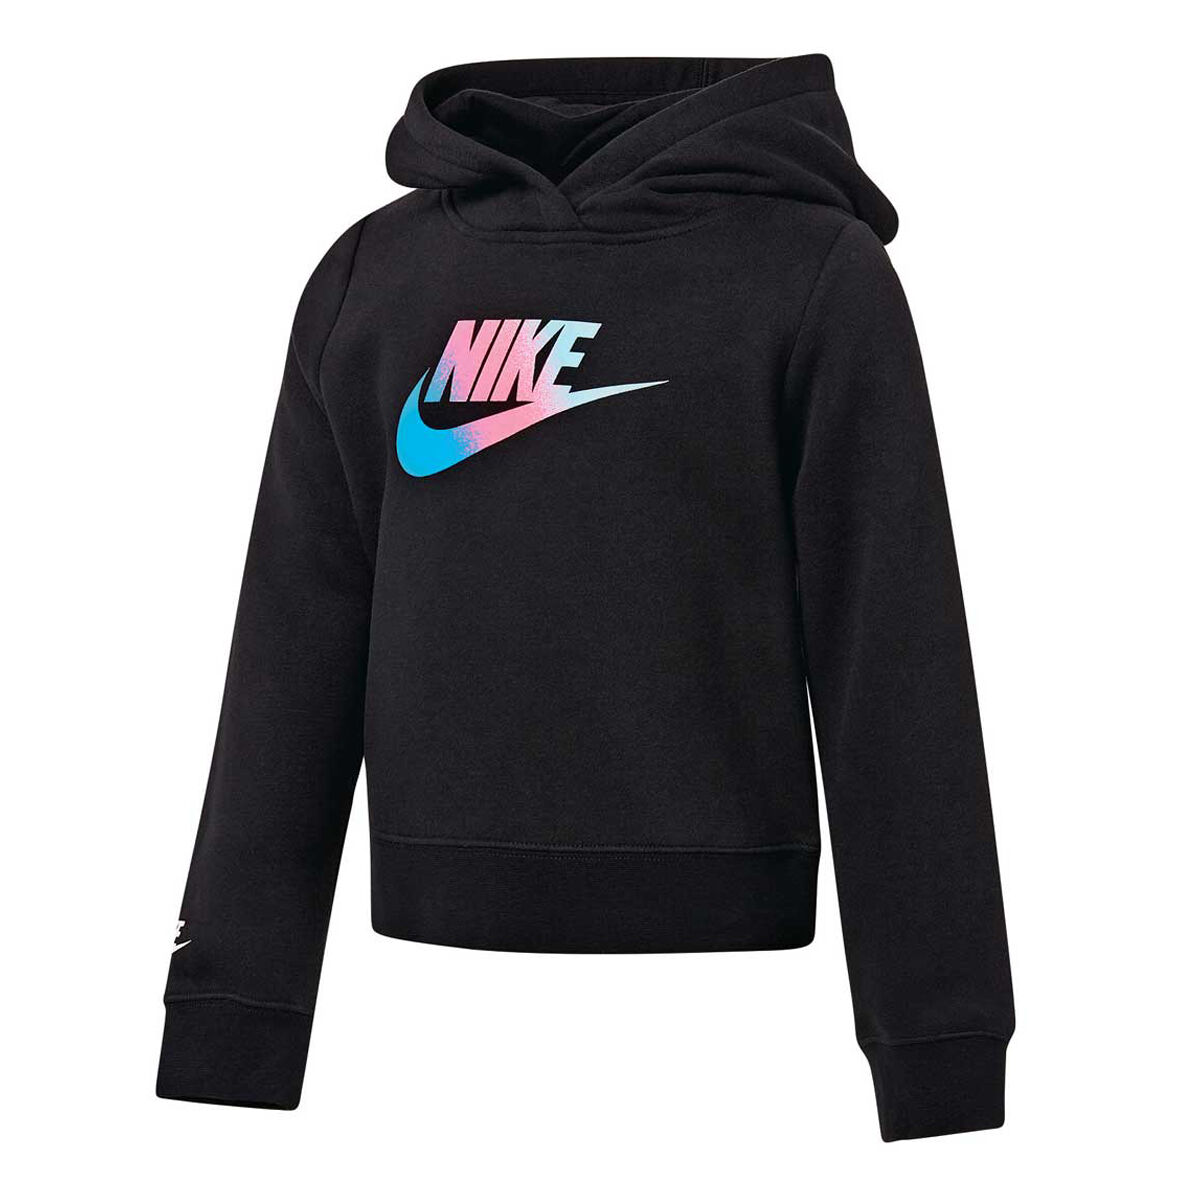 Nike Cropped Hoodie sweater Fast Fly Track & Field